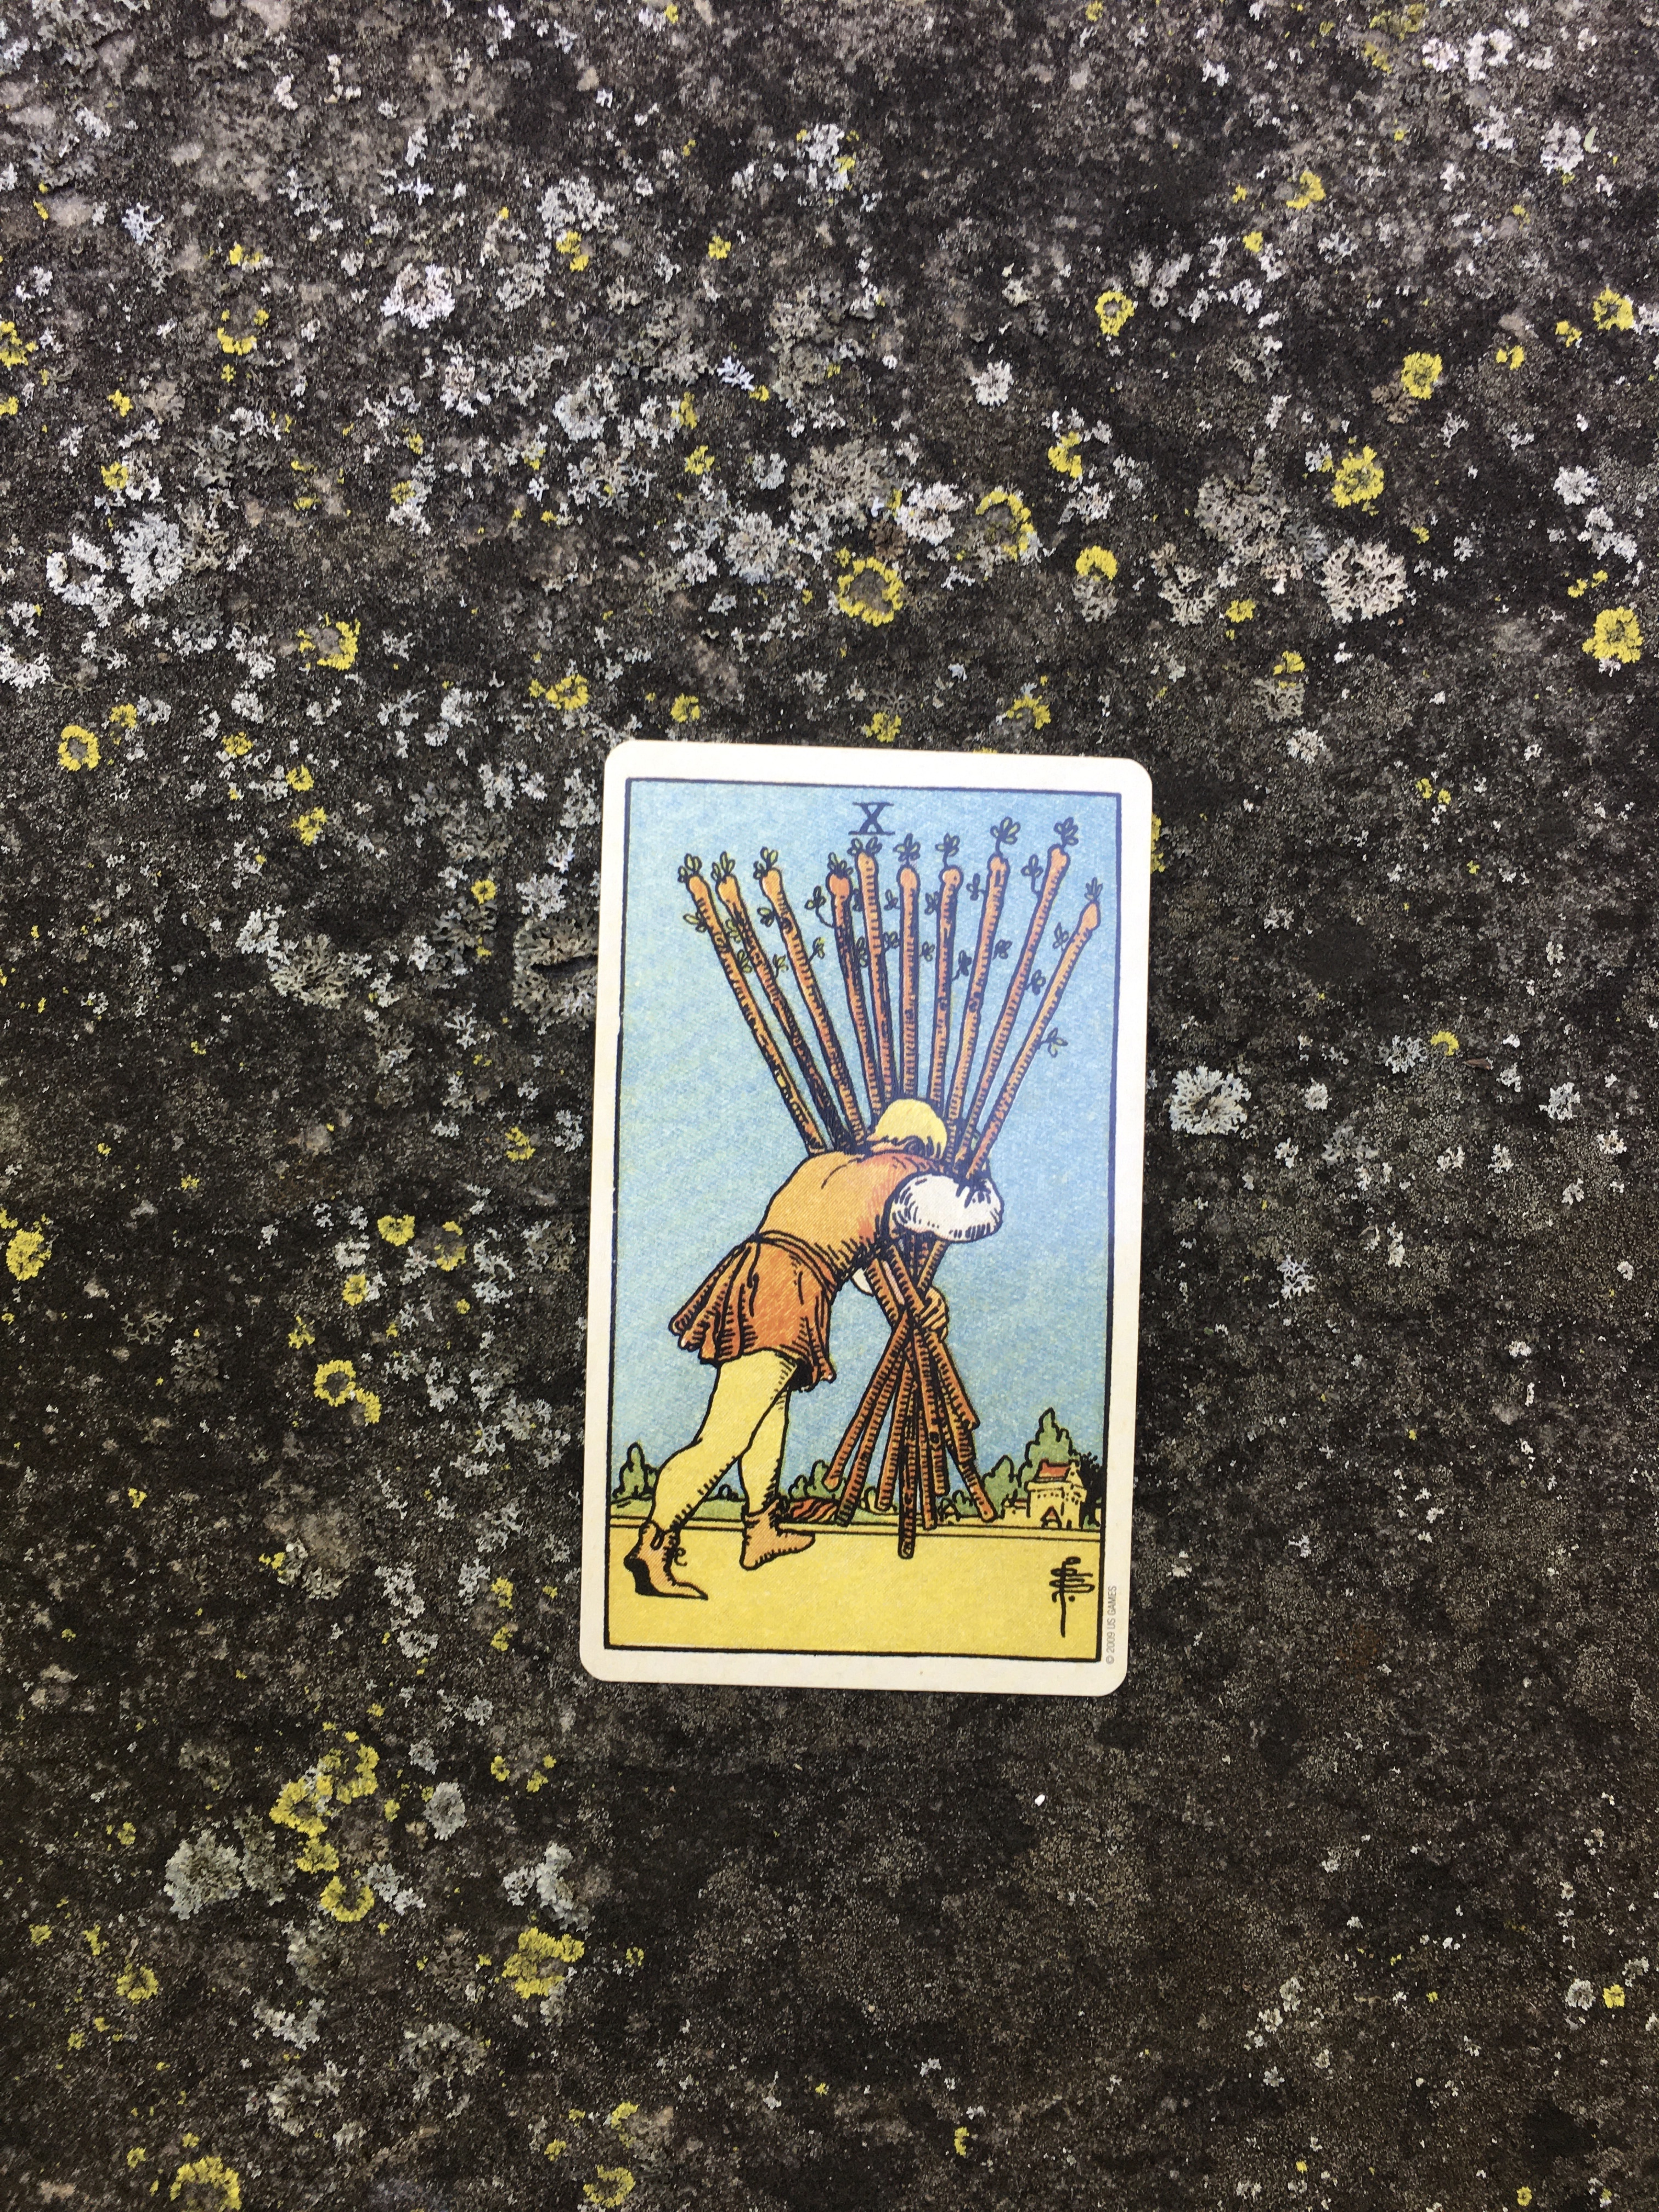 Tarot for Mindfulness and the Ten of Wands: An Ally When It's Too Much for One